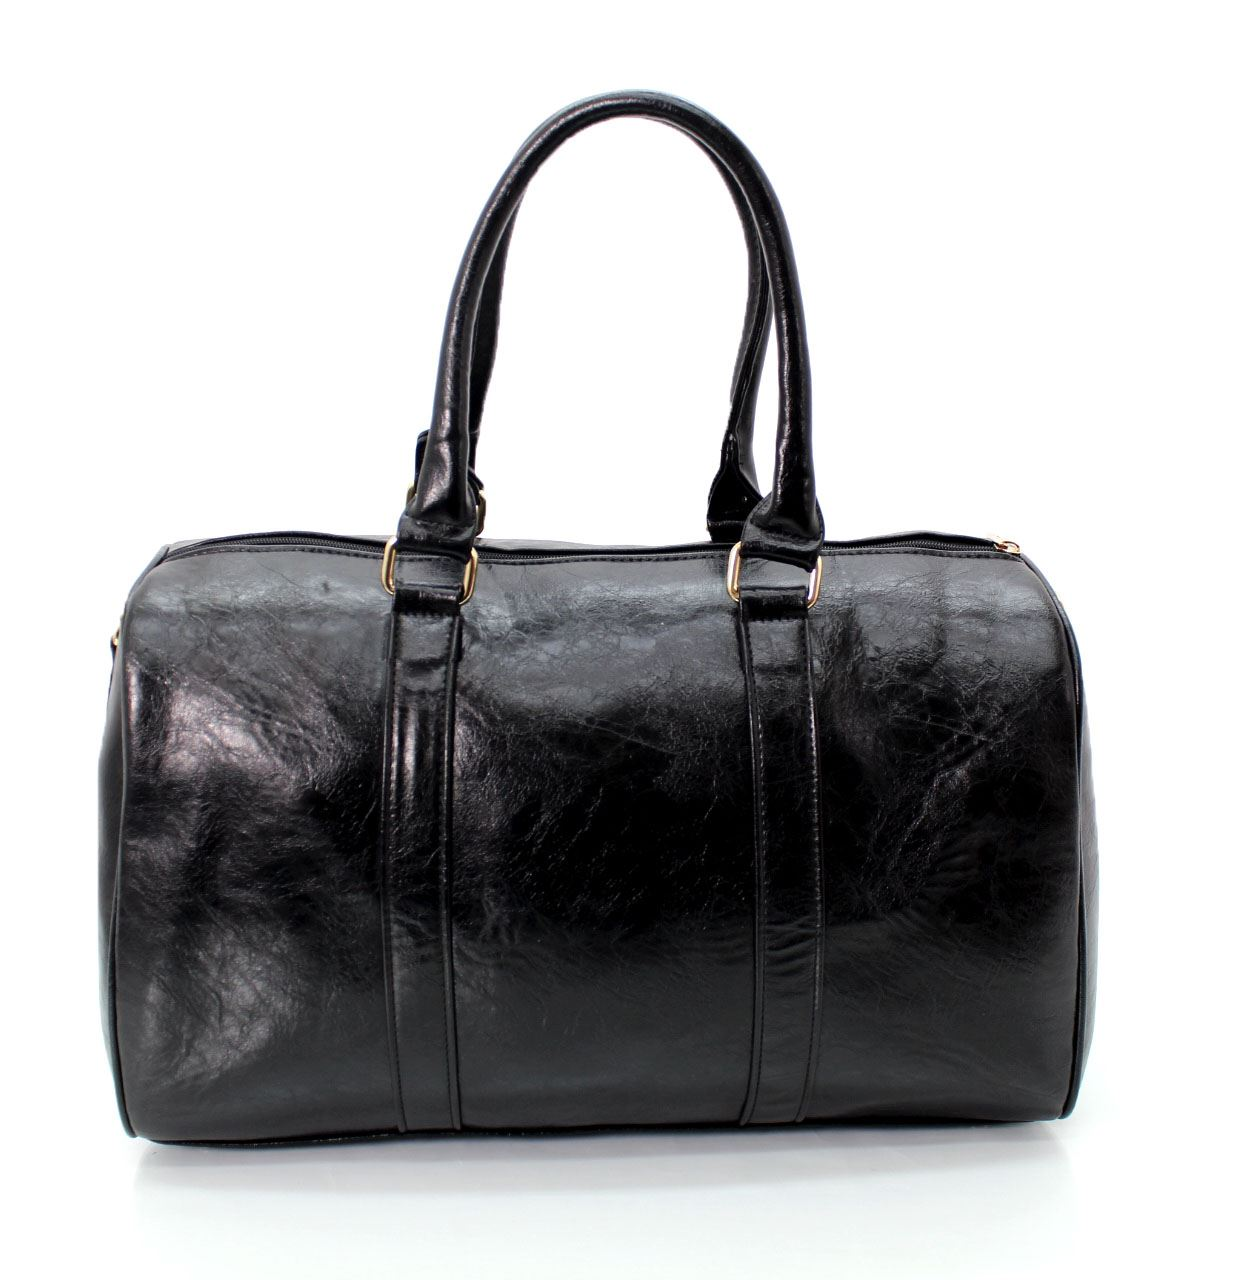 Leather Duffel Bags: cripatsur.ga - Your Online Duffel Bags Store! Get 5% in rewards with Club O!